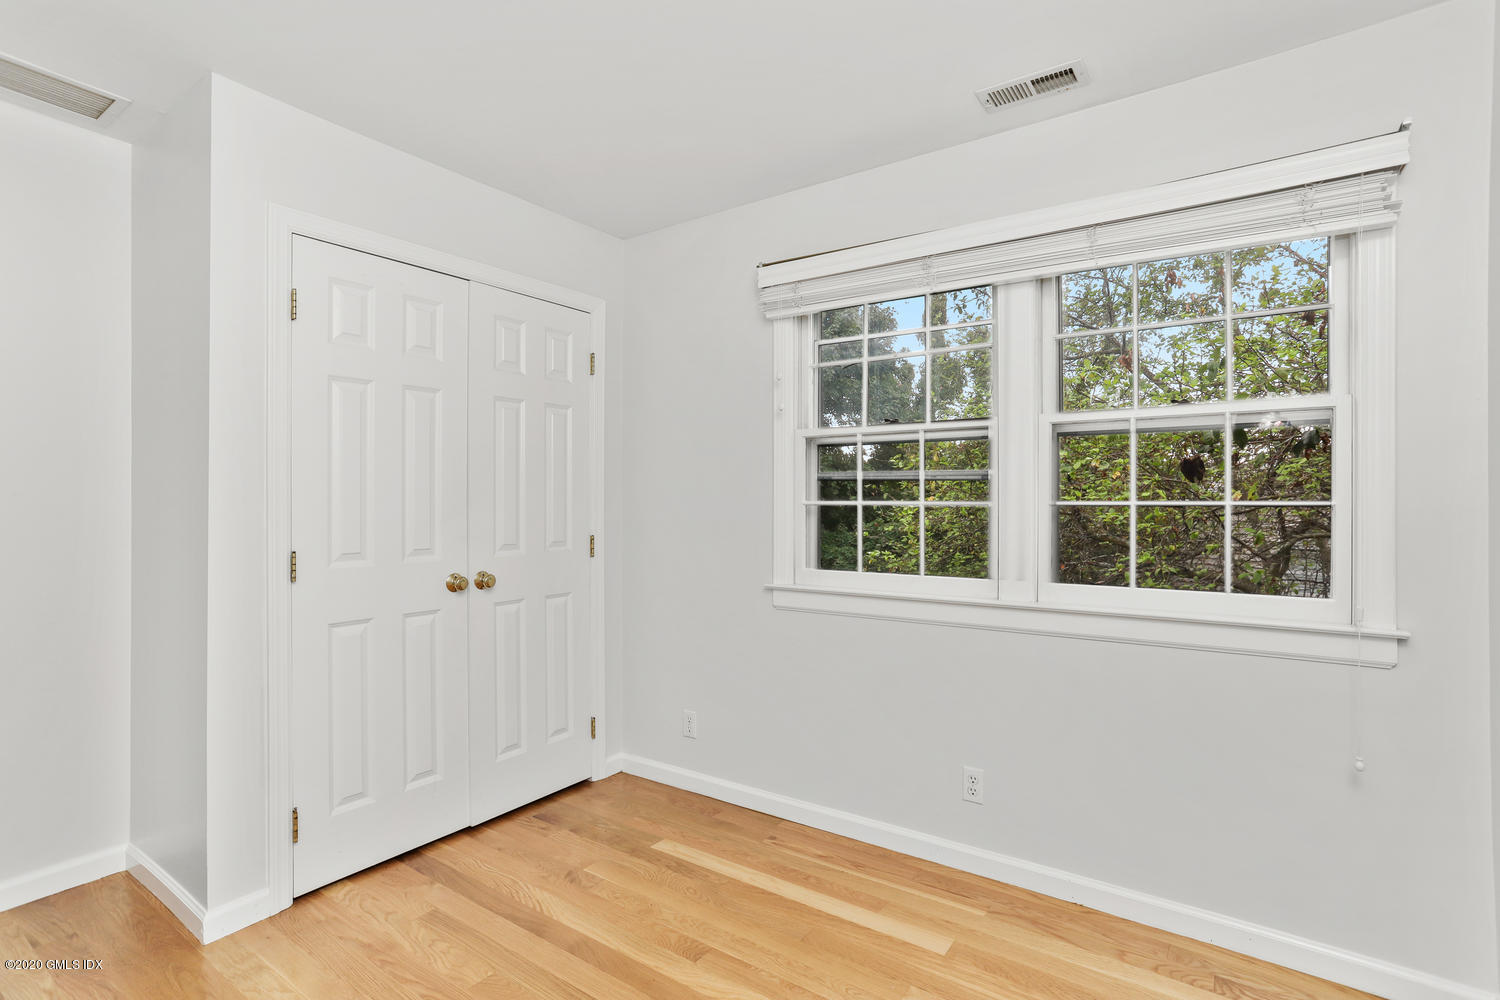 5 Windy Knolls, Greenwich, Connecticut 06831, 4 Bedrooms Bedrooms, ,2 BathroomsBathrooms,Single family,For Rent,Windy Knolls,110732